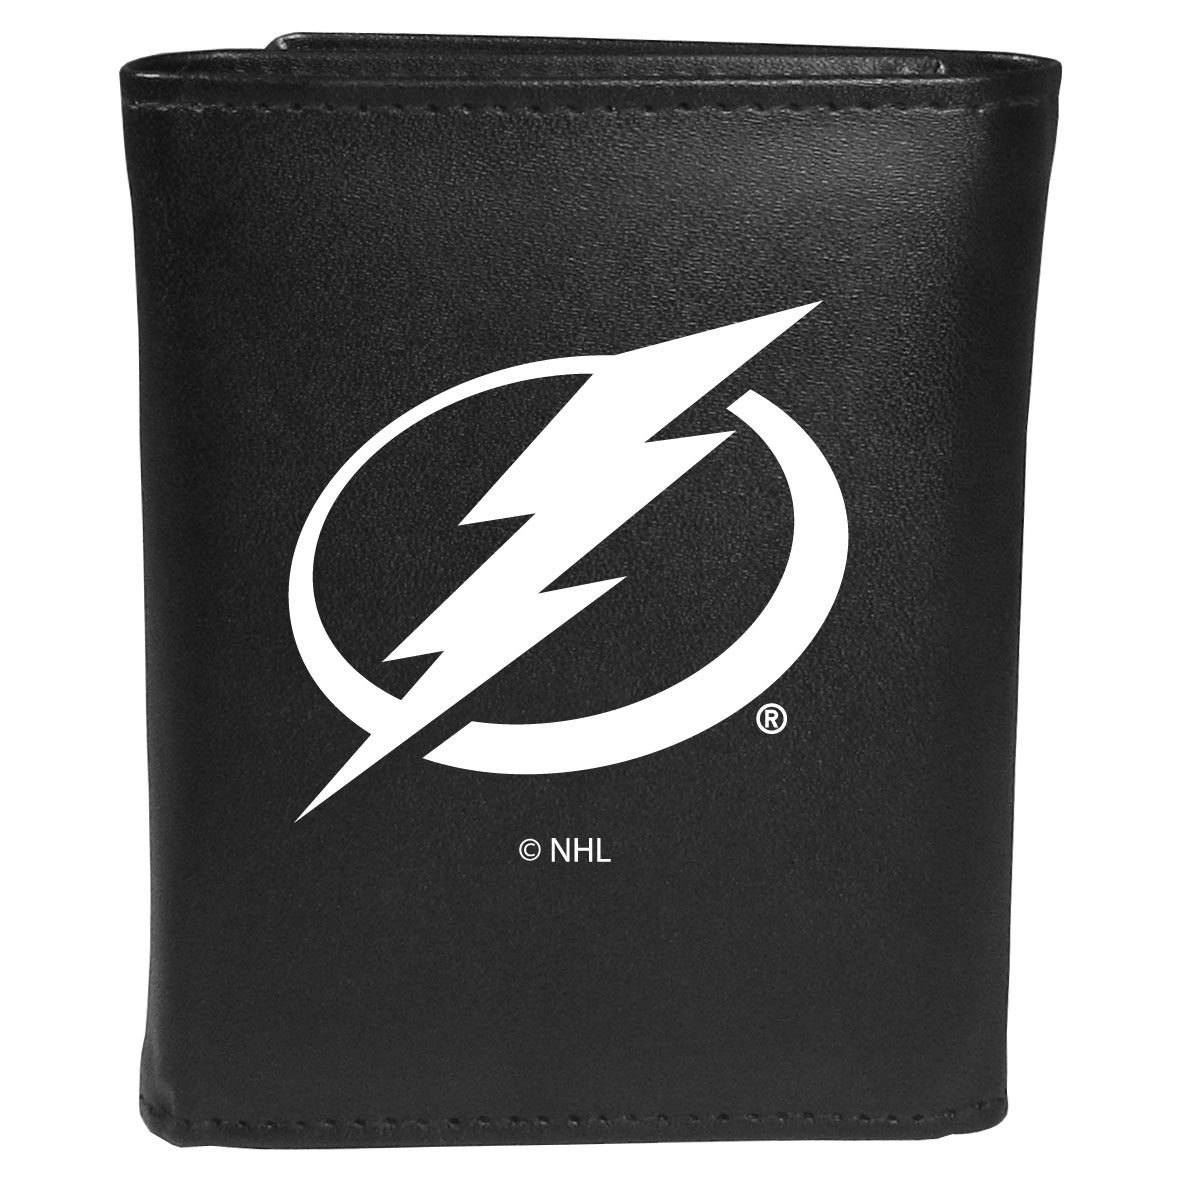 Tampa Bay Lightning® Leather Tri-fold Wallet, Large Logo - Our classic fine leather tri-fold wallet is meticulously crafted with genuine leather that will age beautifully so you will have a quality wallet for years to come. This is fan apparel at its finest. The wallet is packed with organizational  features; lots of credit card slots, large billfold pocket, and a window ID slot. The front of the wallet features an extra large Tampa Bay Lightning® printed logo.